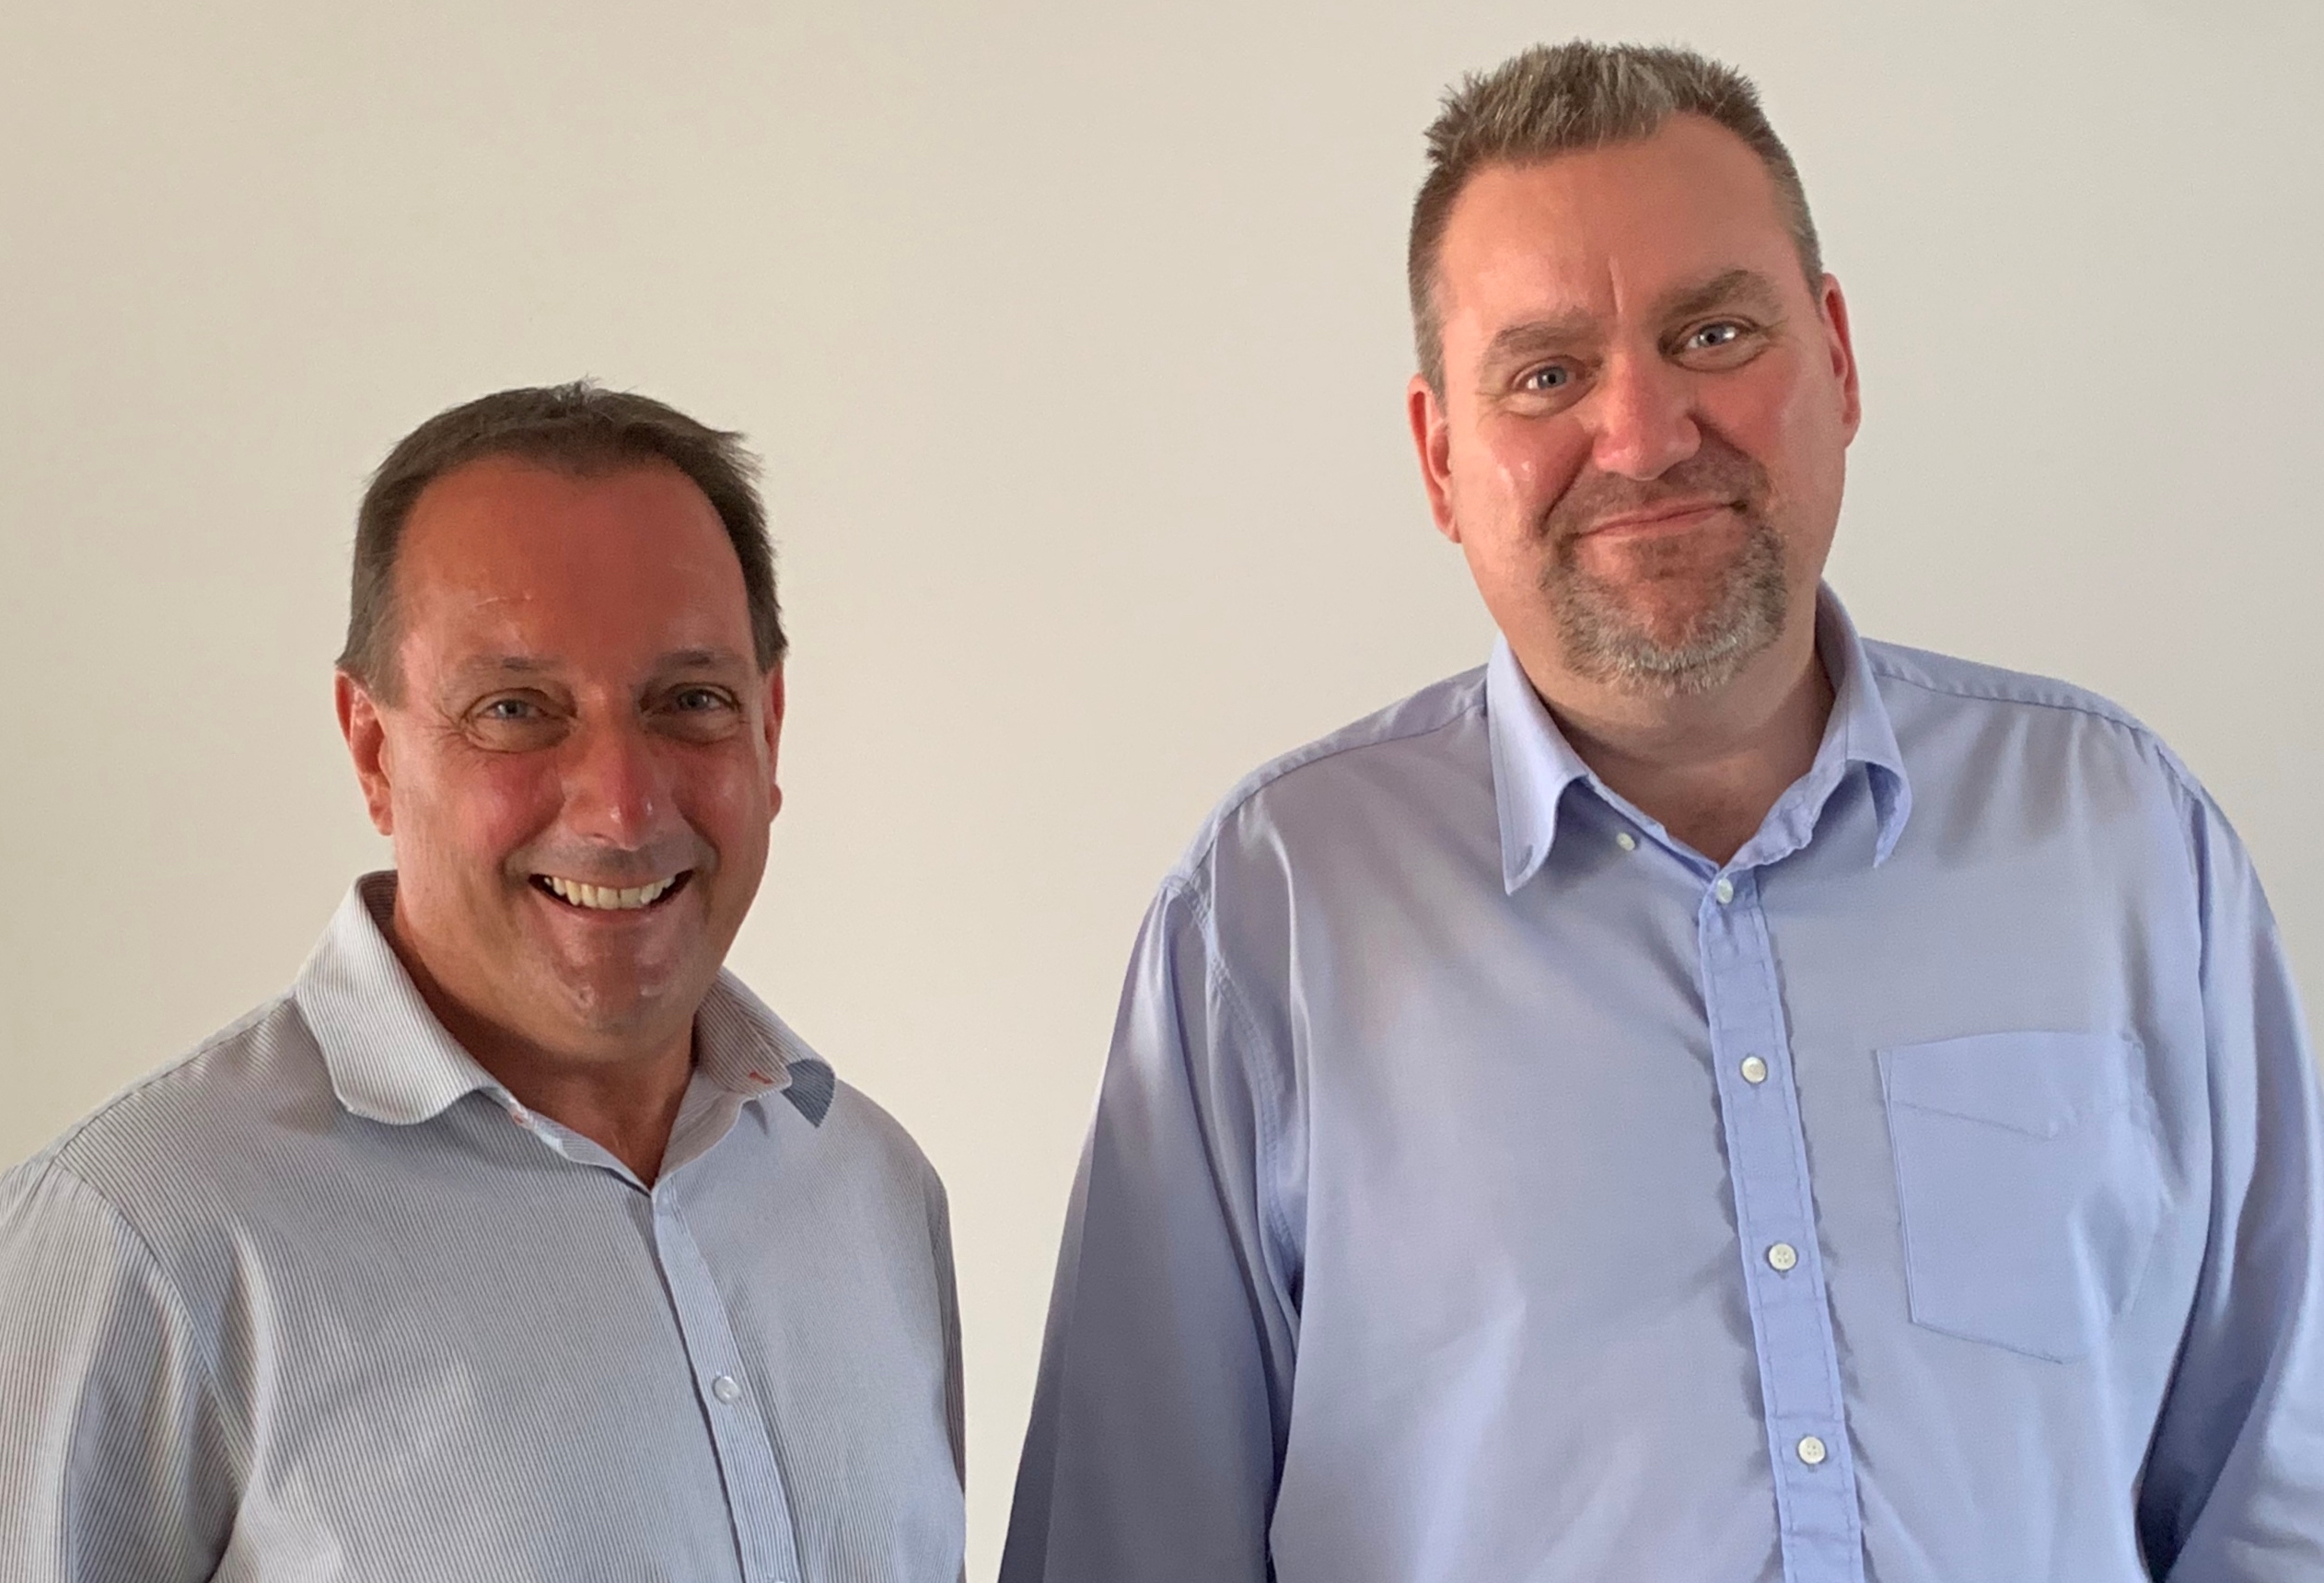 Simon and Craig home in on new business venture